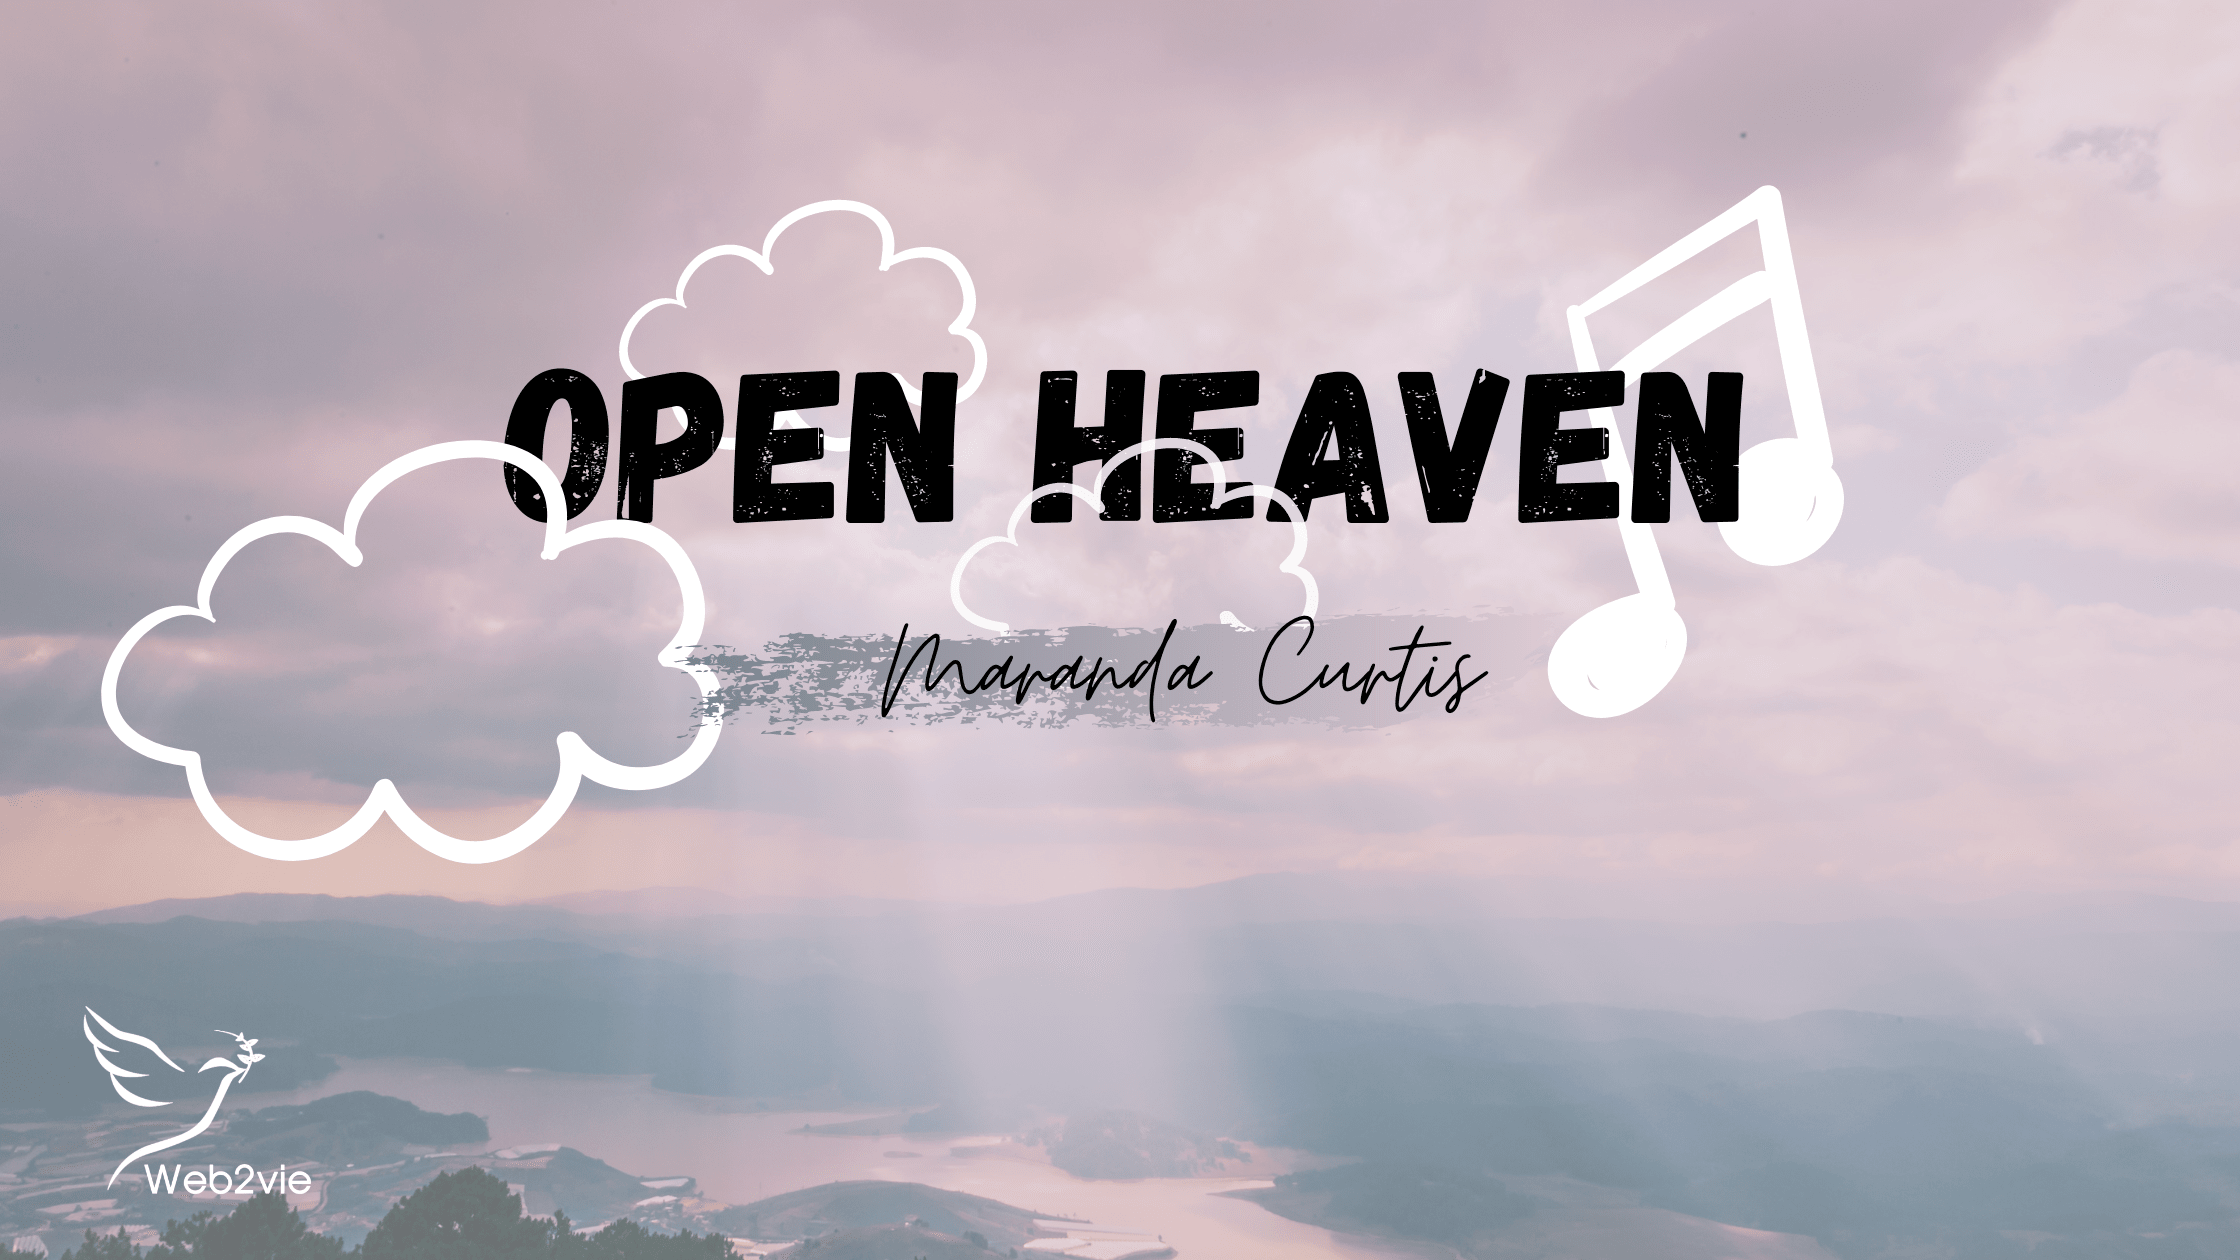 Open Heaven - Maranda Curtis